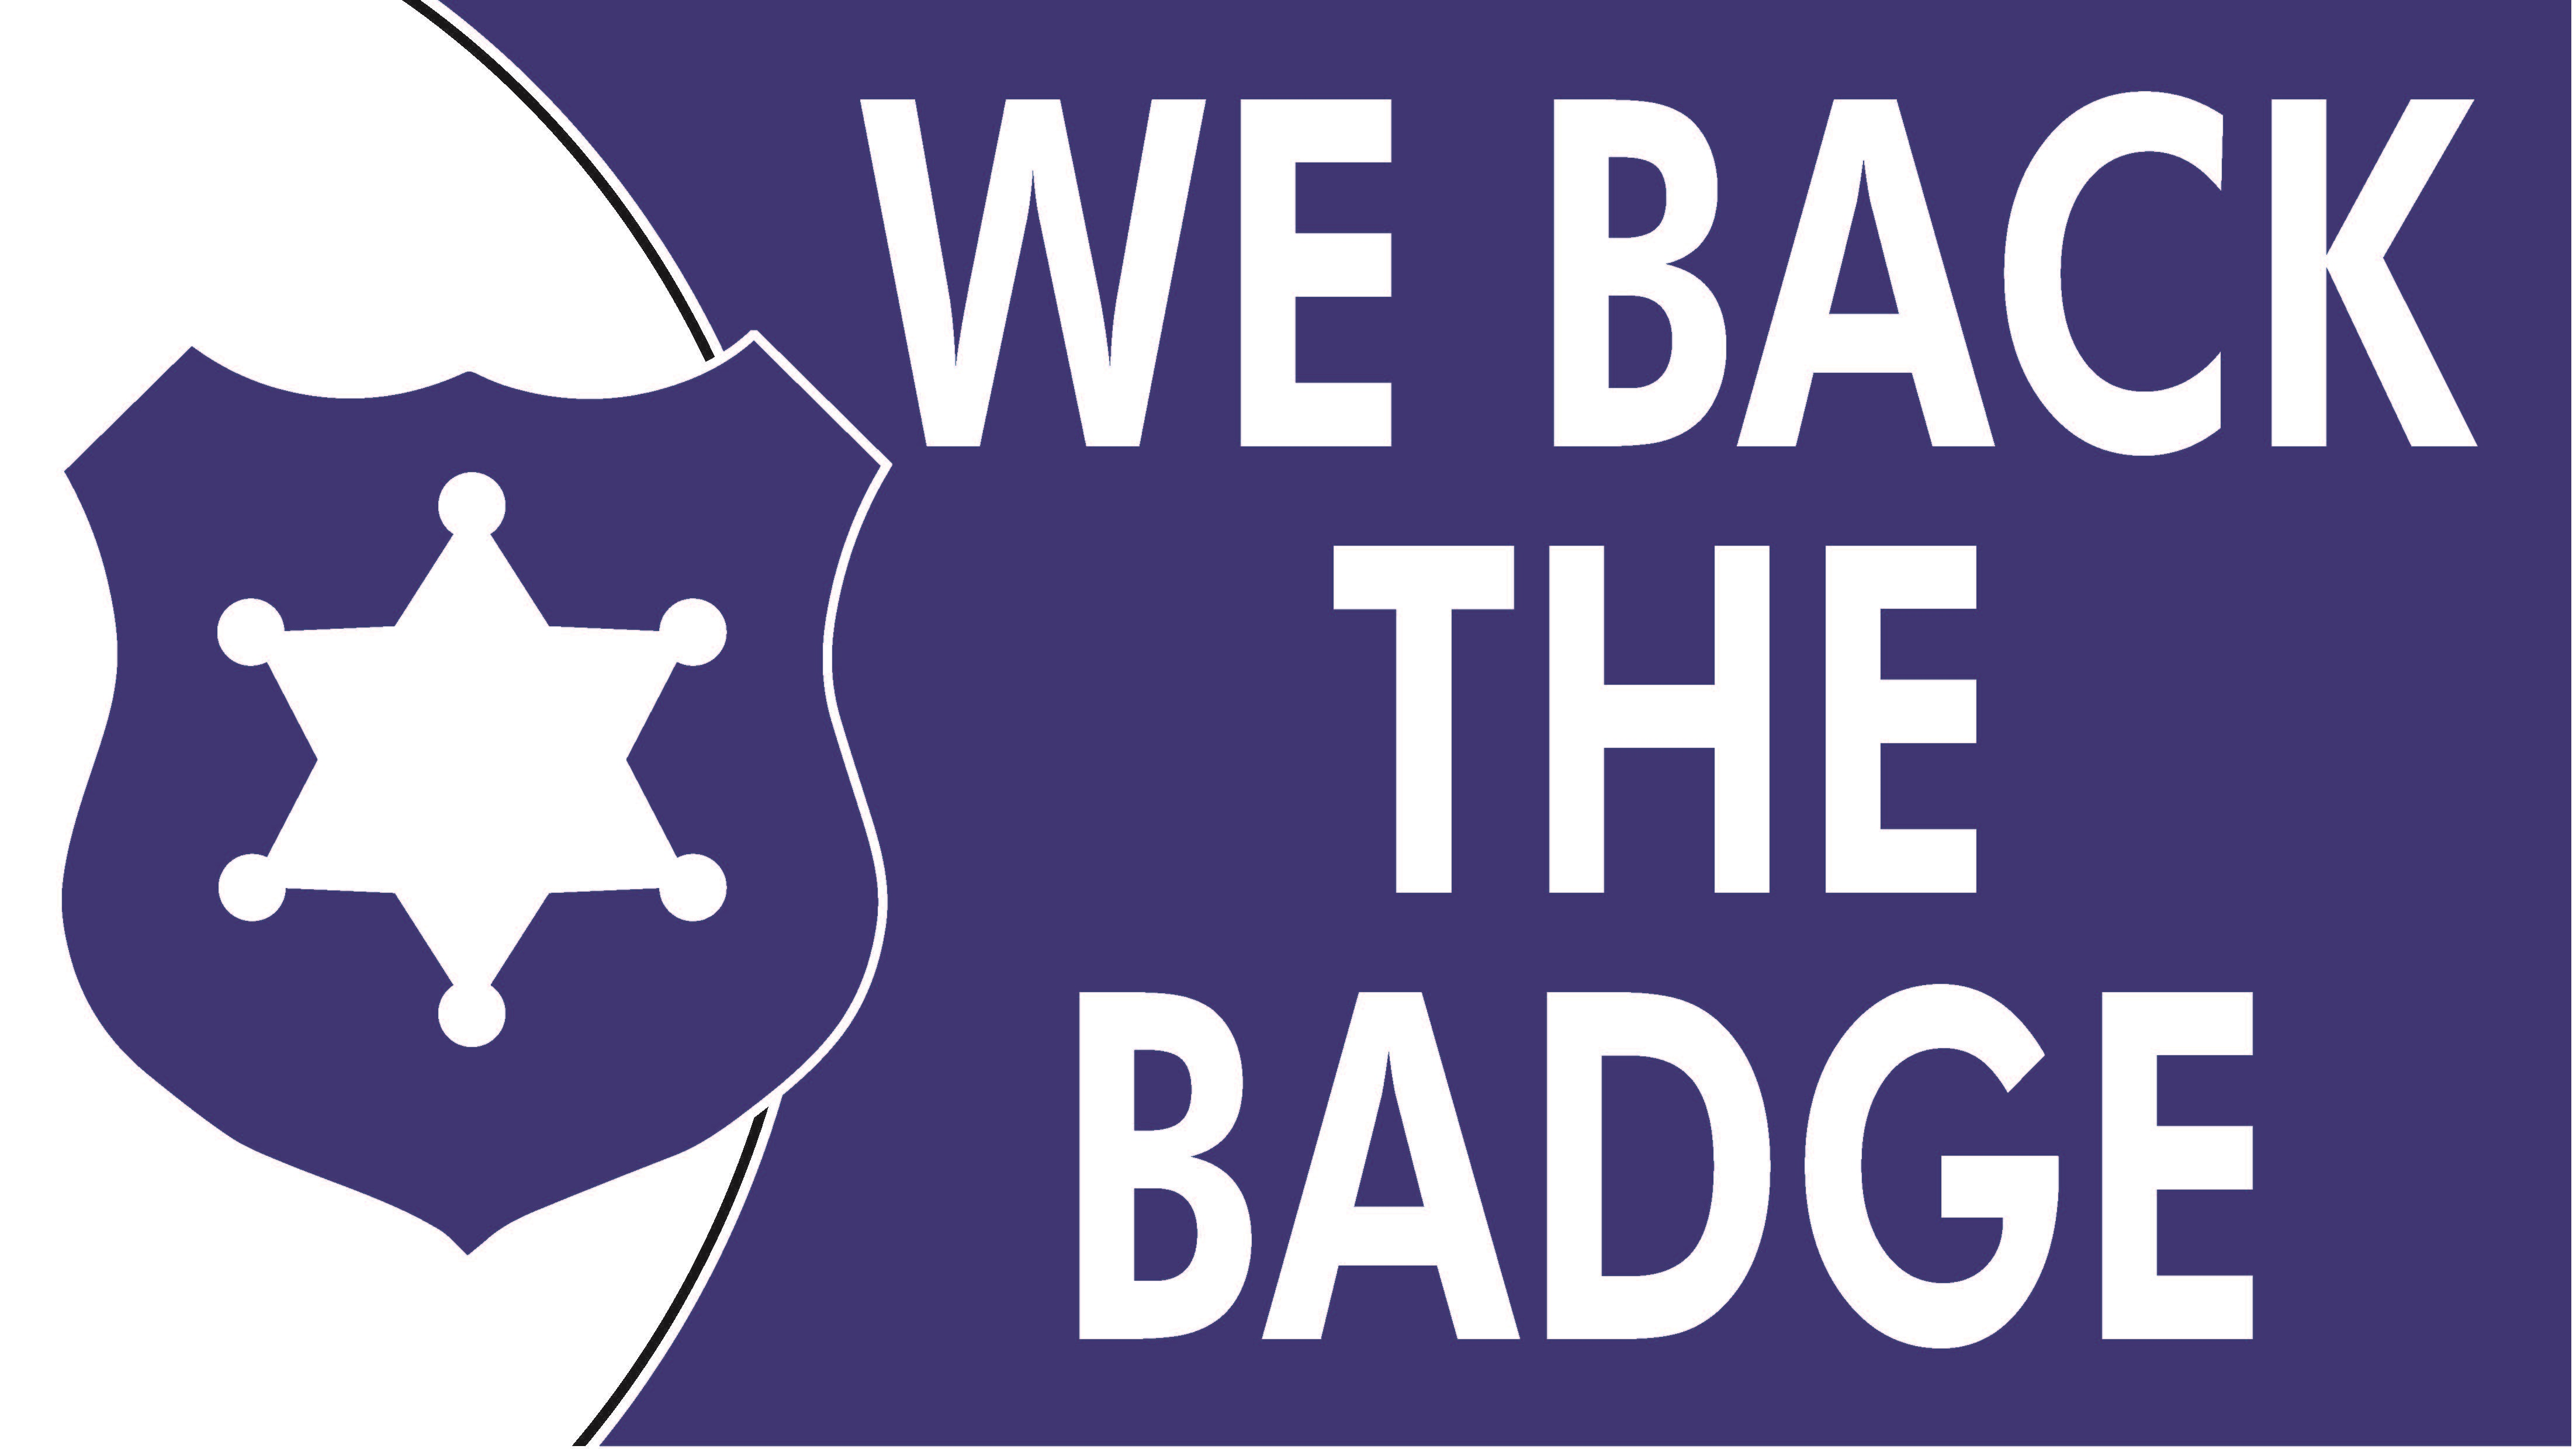 We Back The Badge